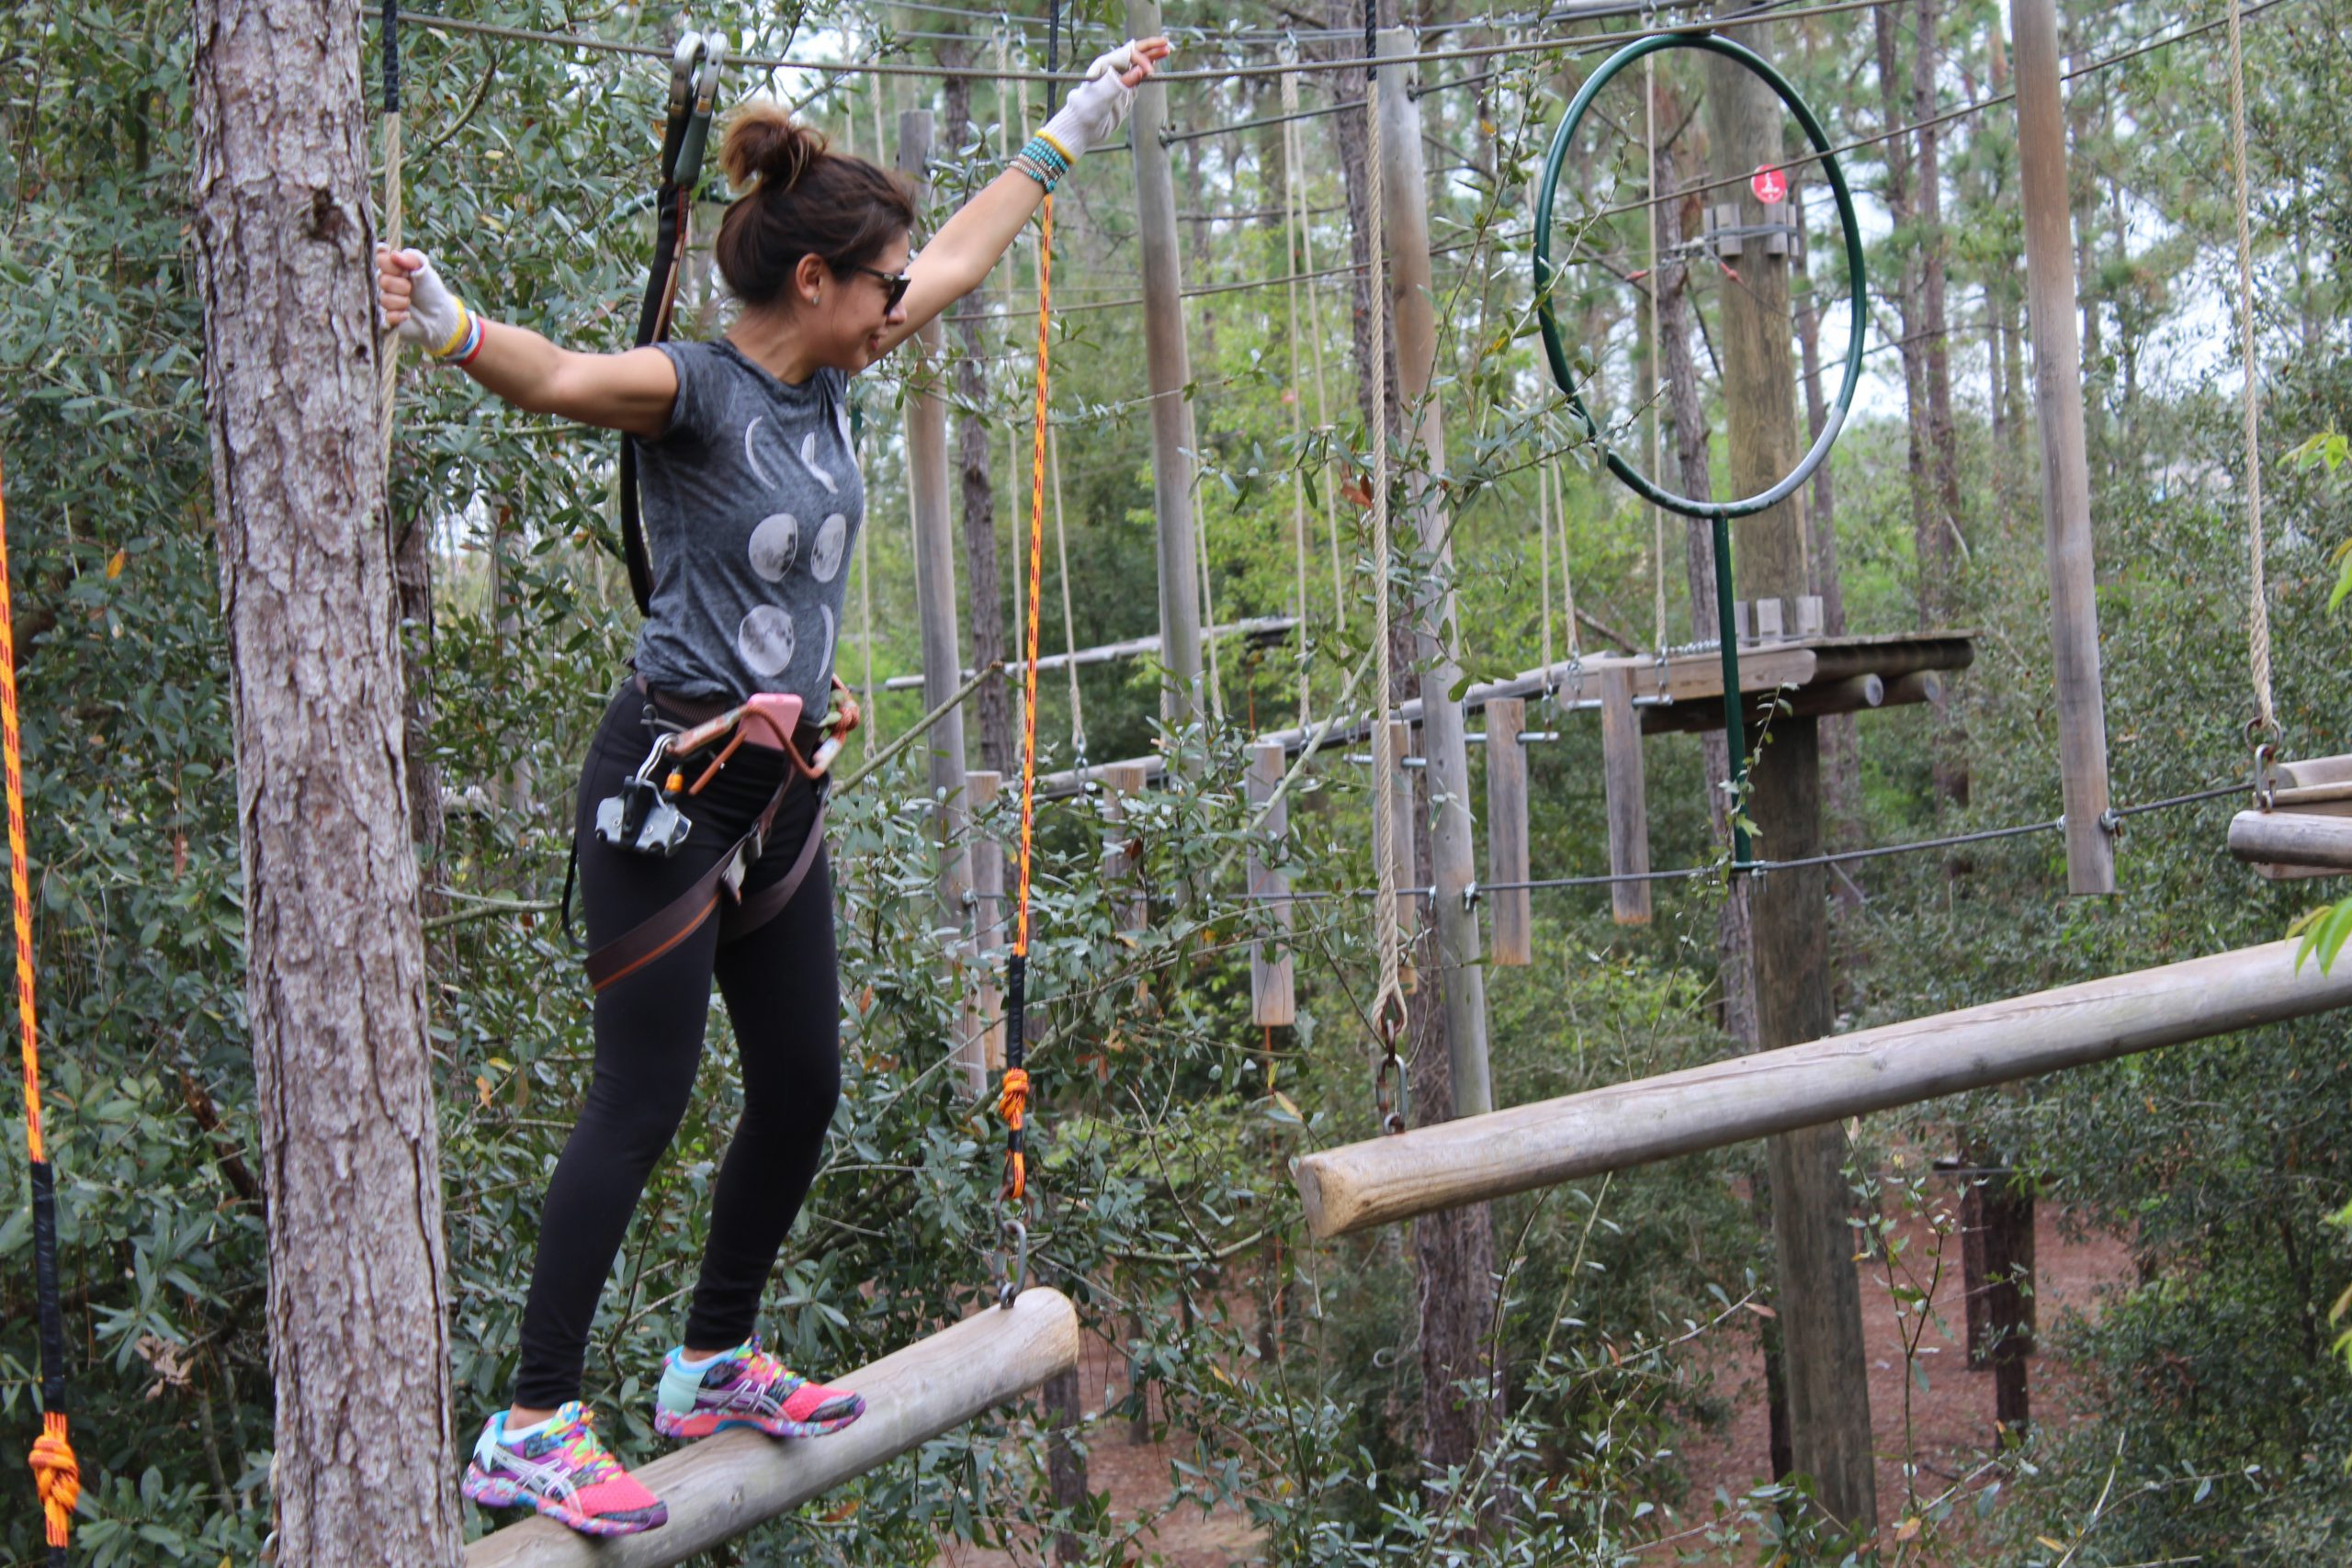 People who can participate in a ropes course